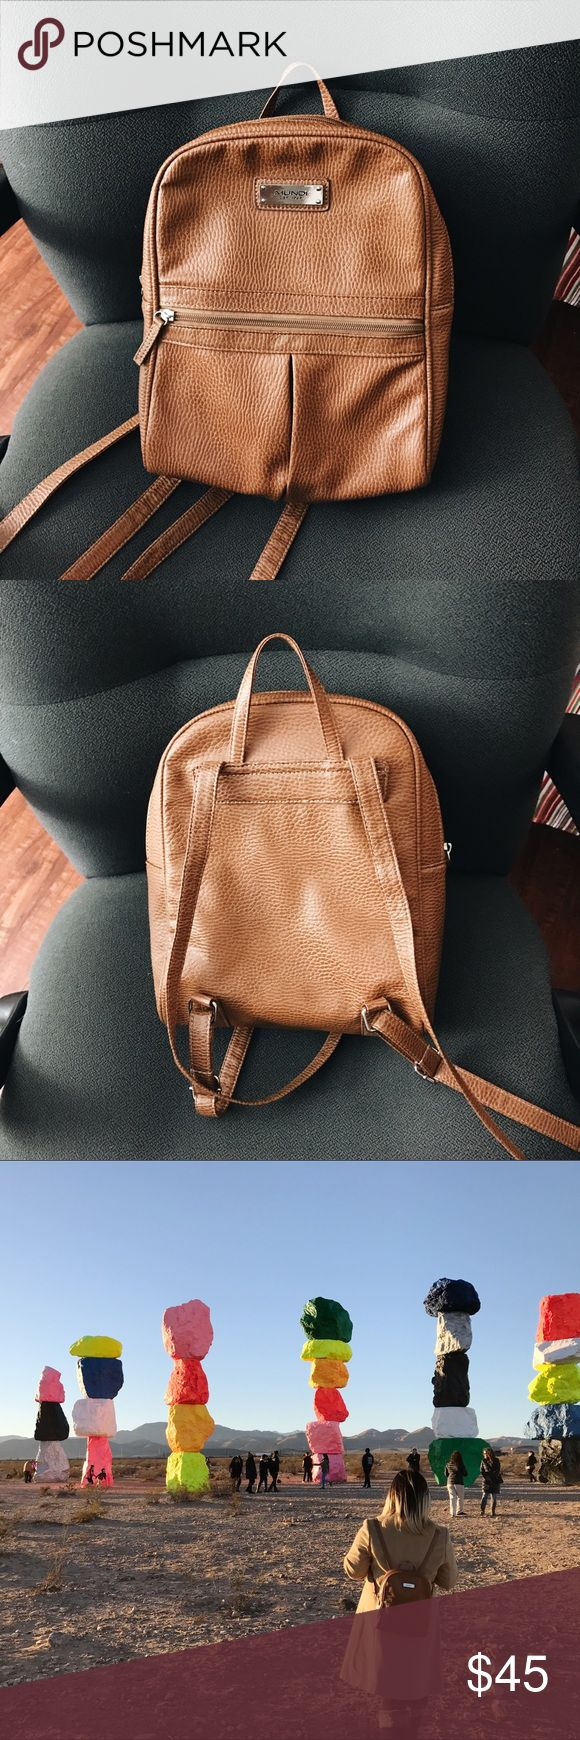 Brown Backpack Used 2 times | Excellent condition | Medium sized backpack Bags Backpacks